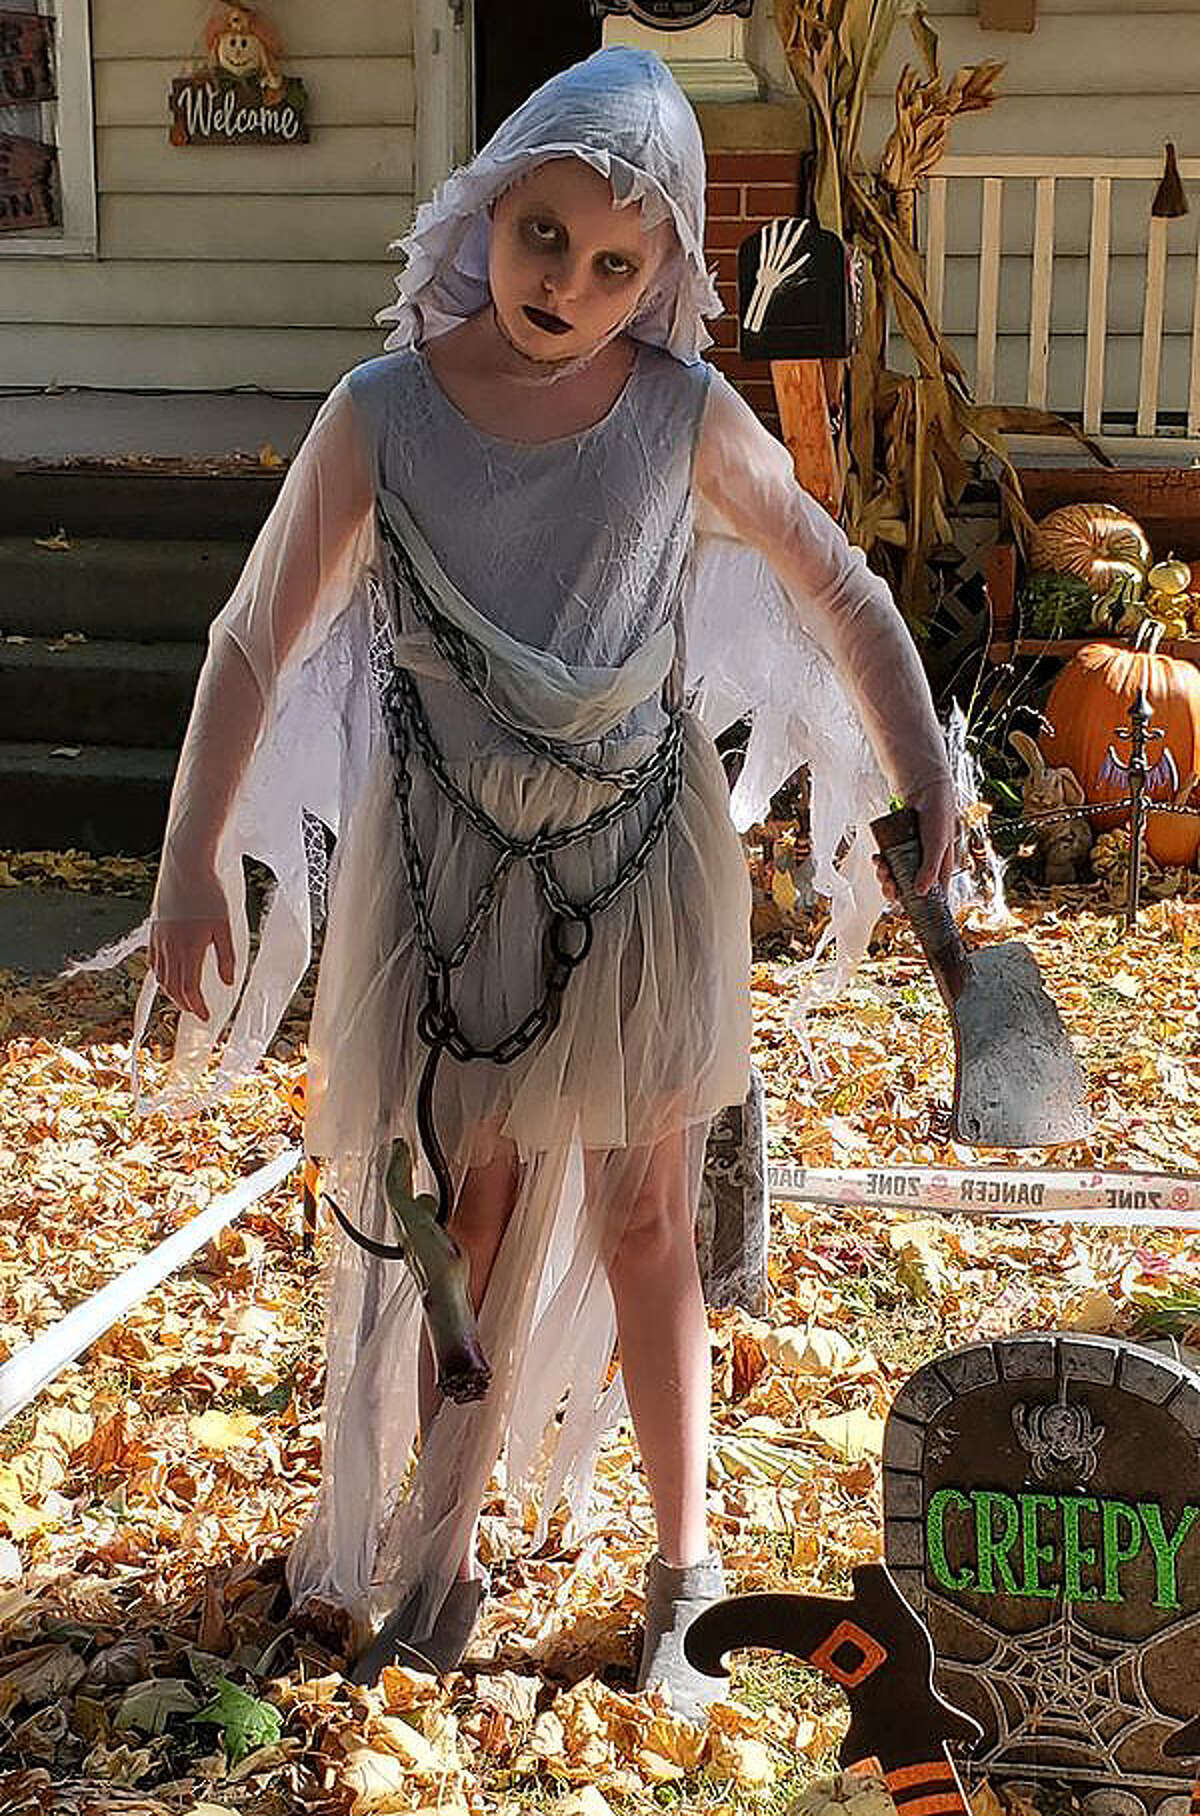 Karlie Probst of Jacksonville shows off her Halloween costume. She is one of the entries in the Journal-Courier's Halloween Costume Contest online.